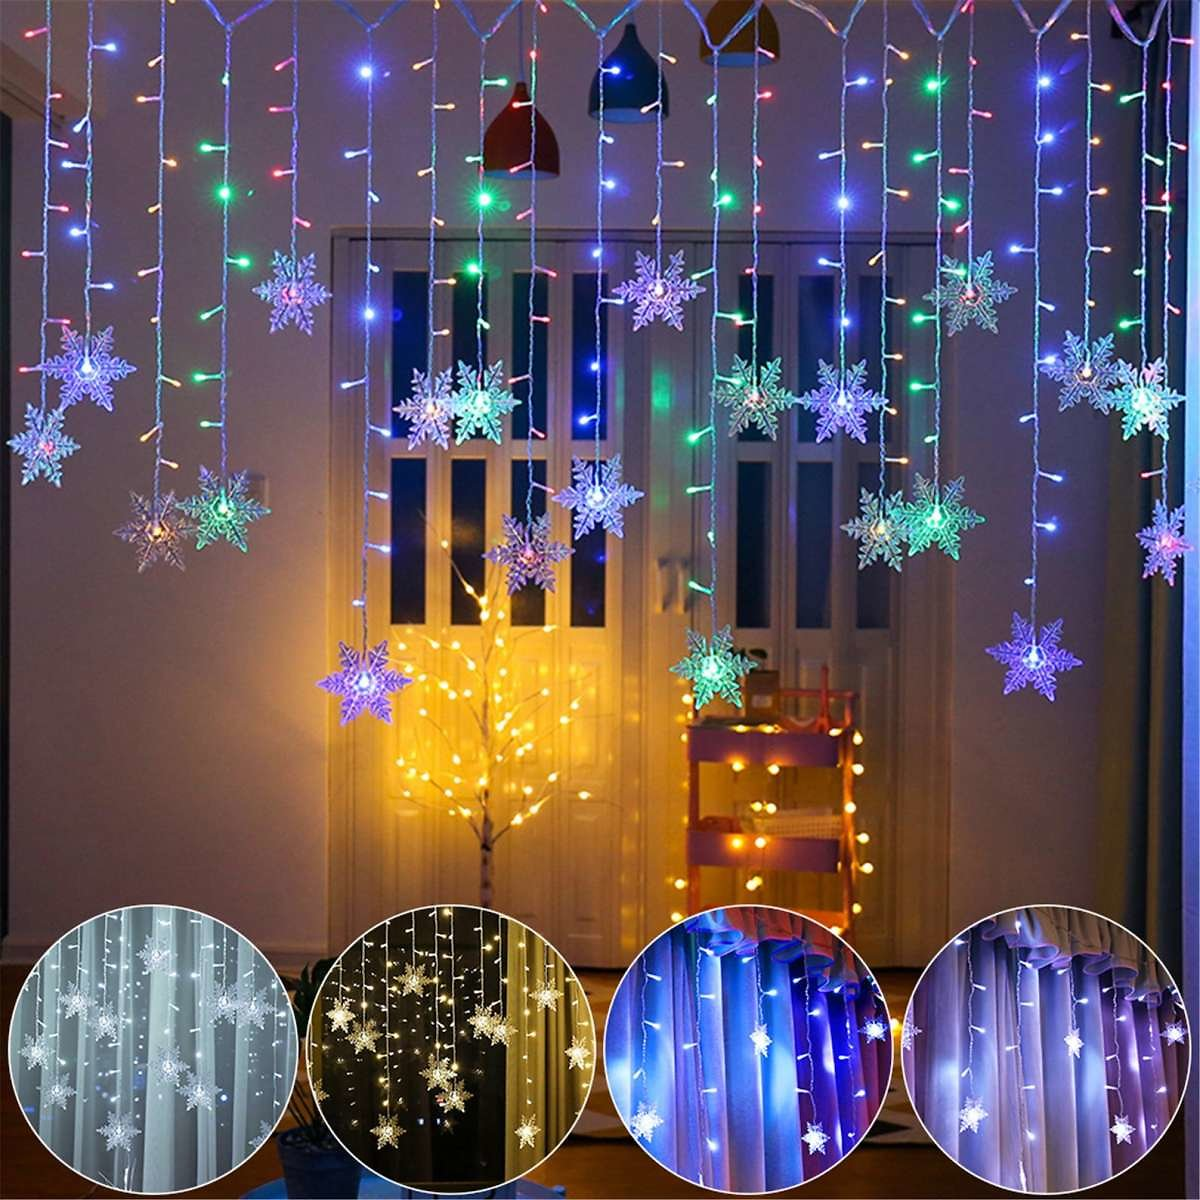 10% OFF LED Curtain String Lights Lamps 110V Snowflake Connectable Wave Fairy Light For Holiday Party Room Home Decoration